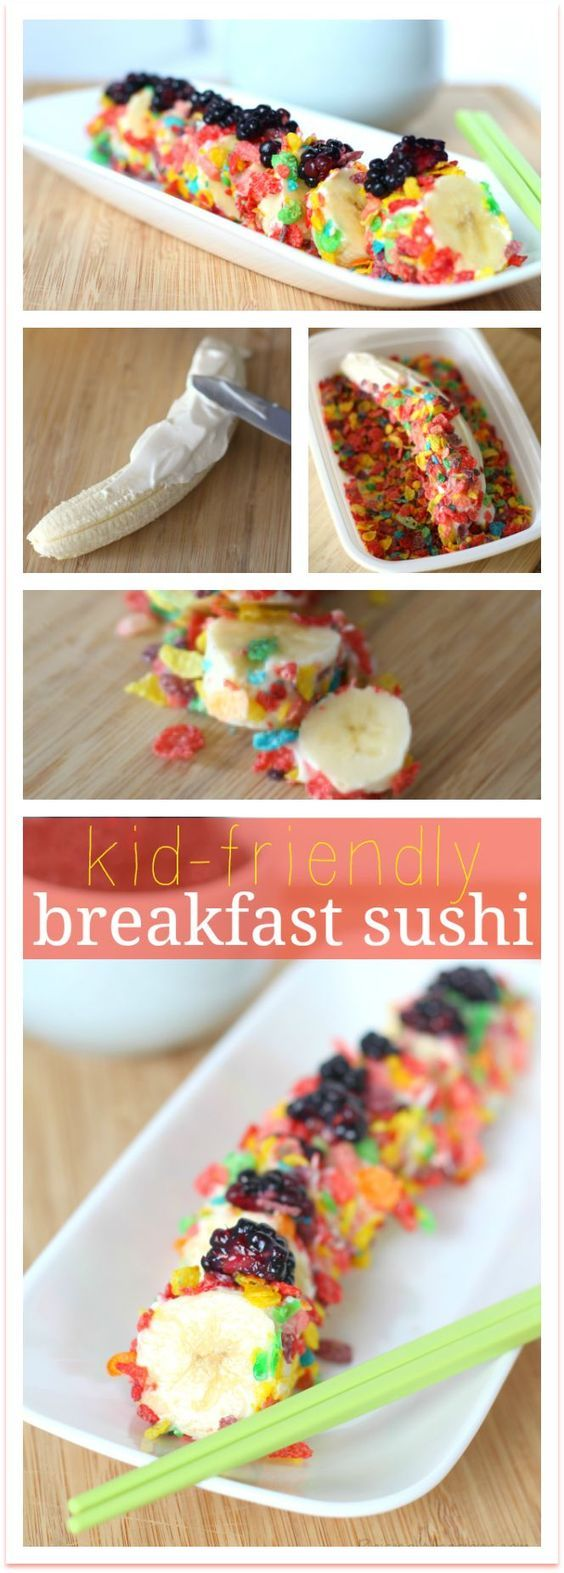 17 Best Ideas About Picky Eaters On Pinterest Meals For